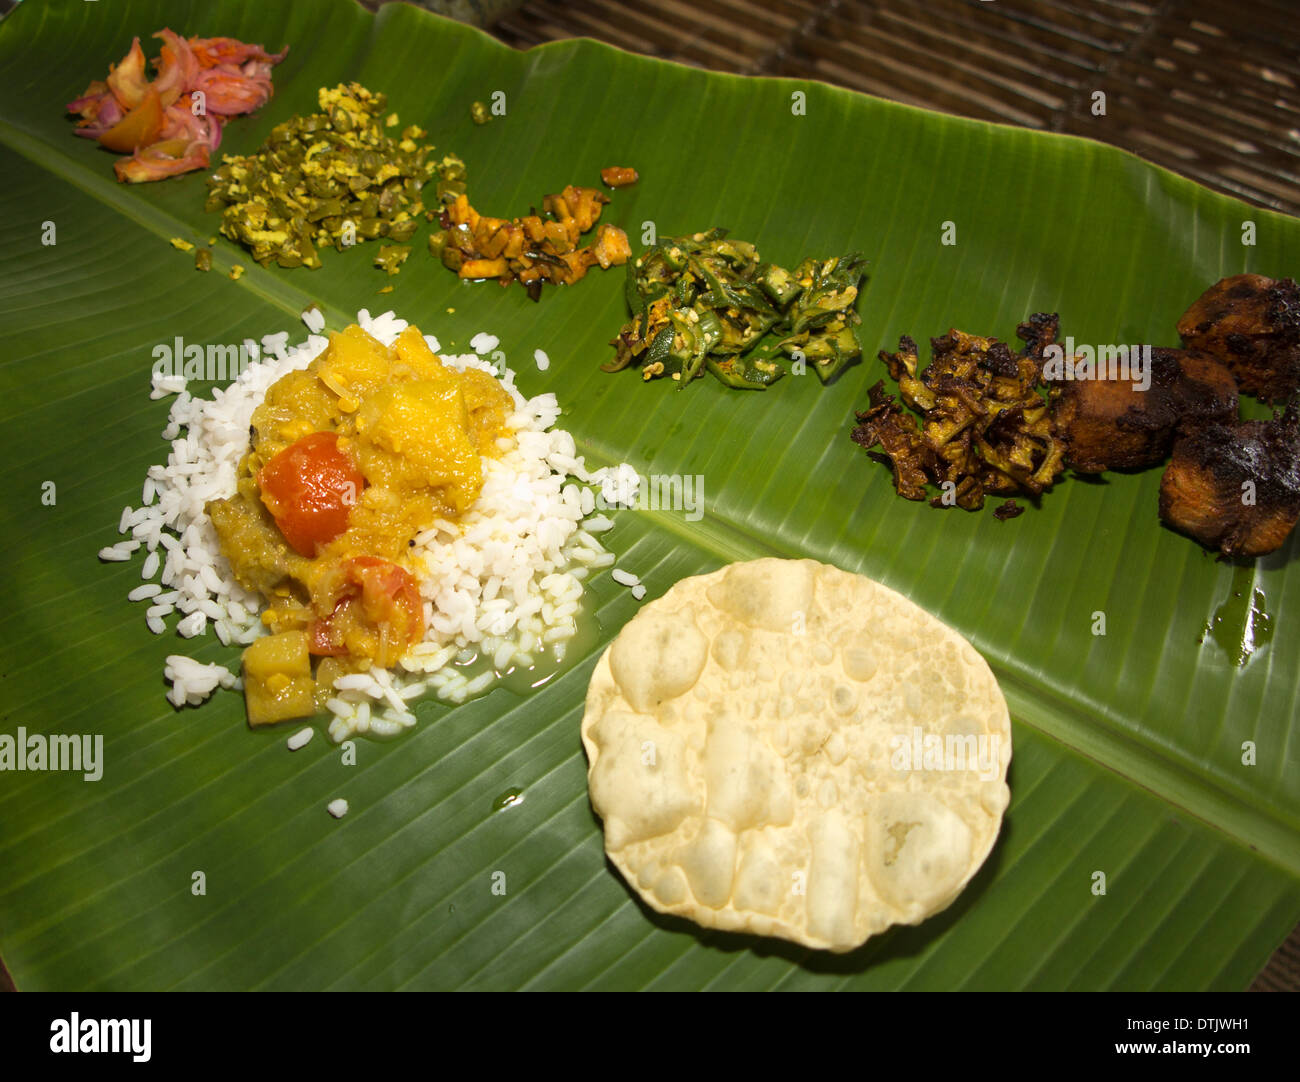 Banana Leaf Indian Food